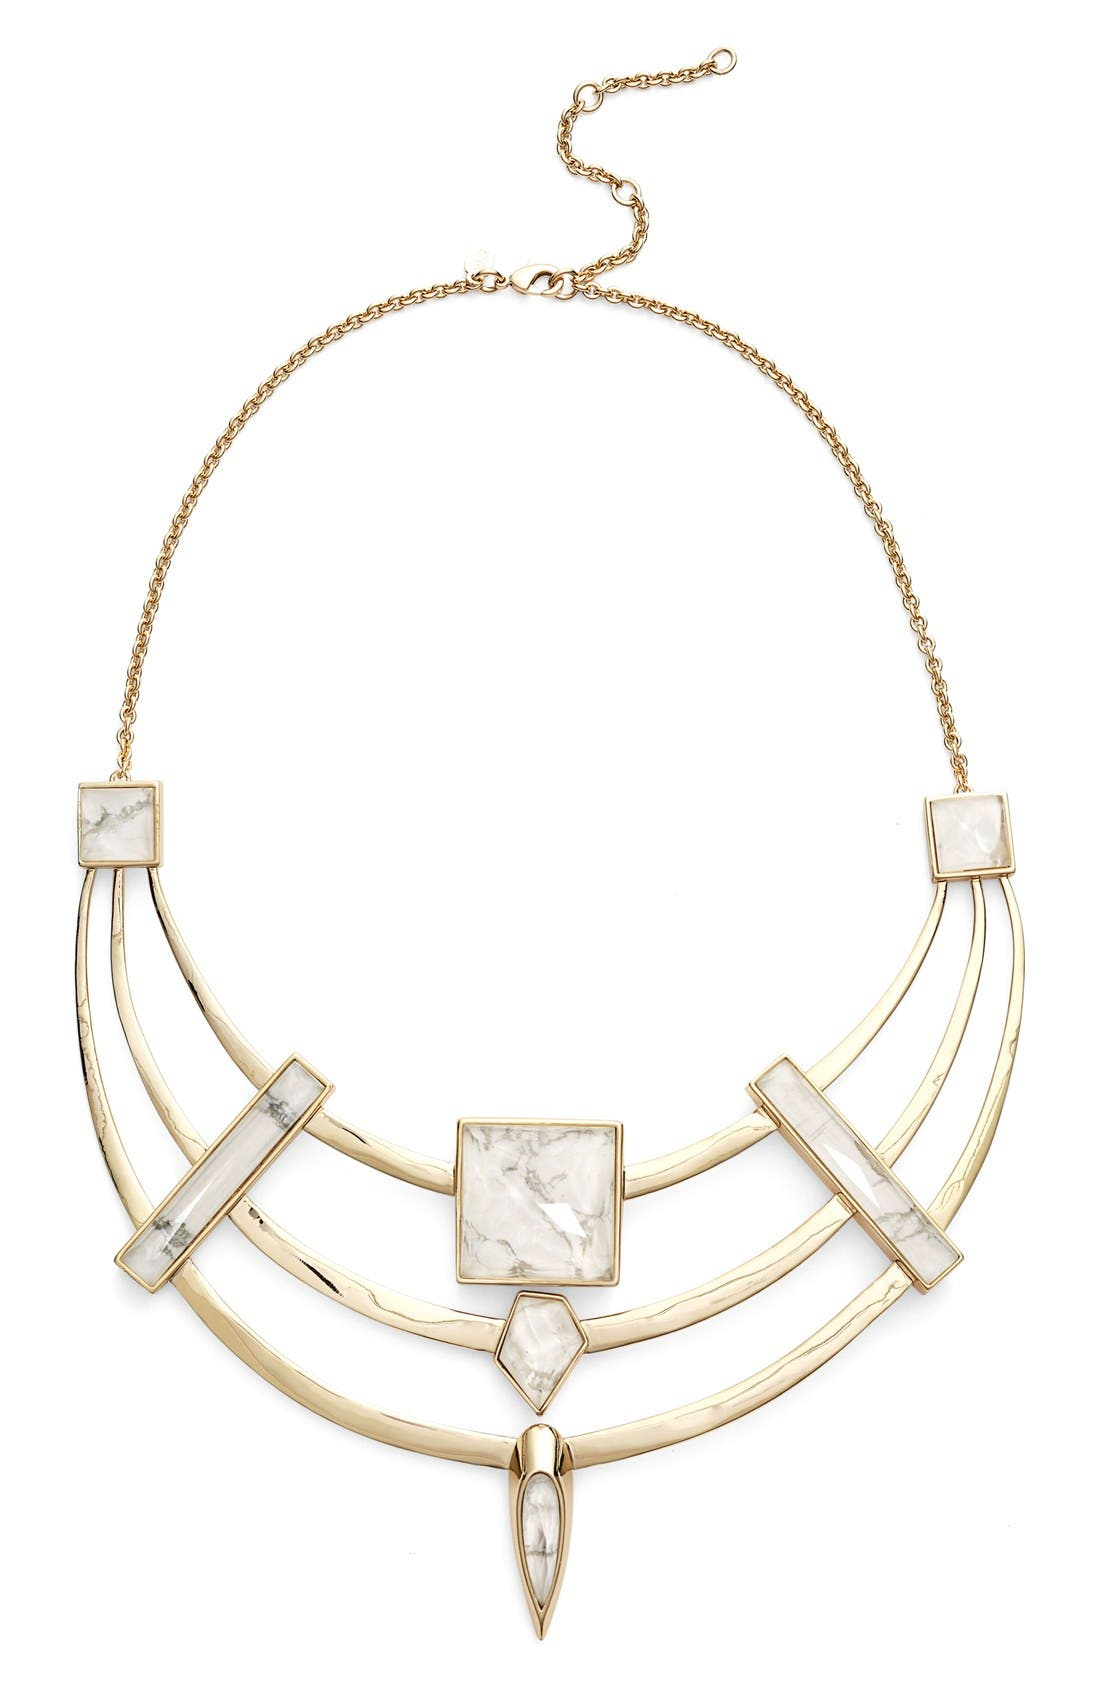 Alternate Image 1 Selected - Alexis Bittar Geometric Square Bib Necklace